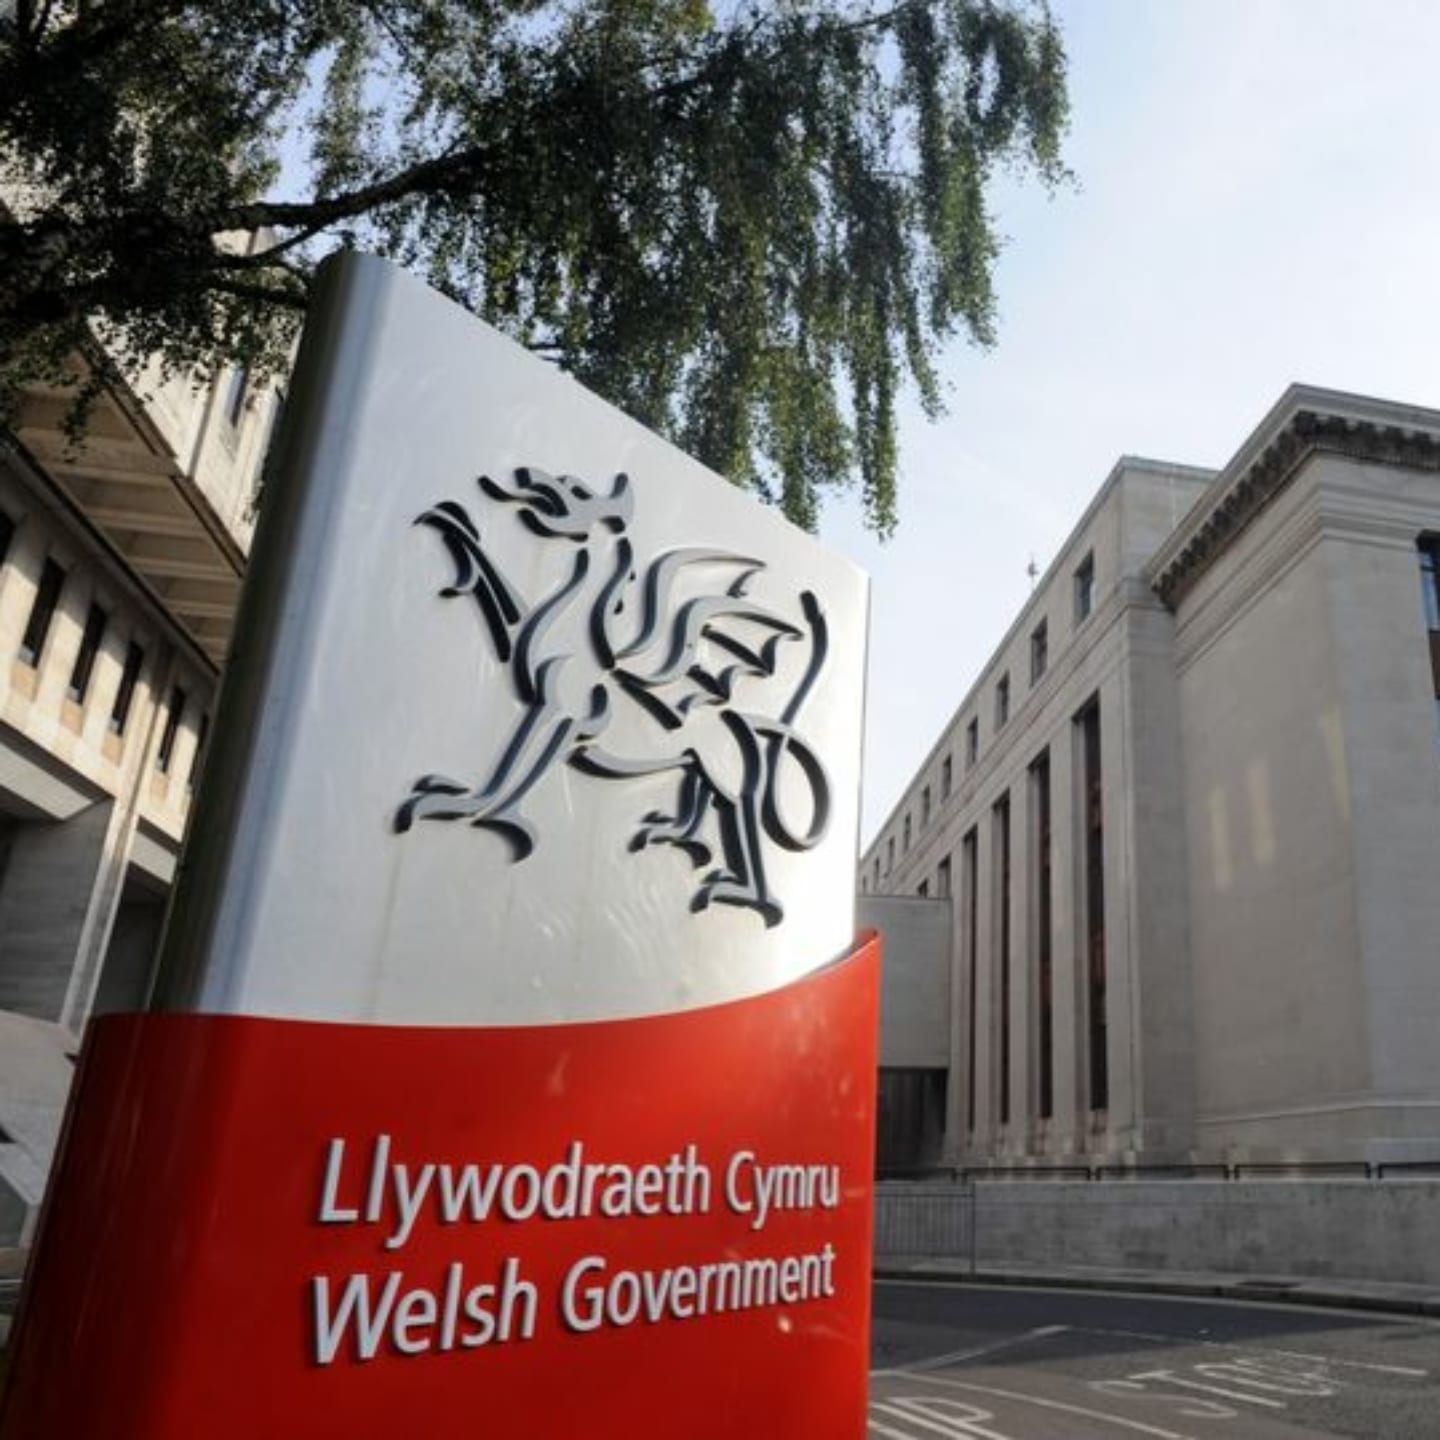 Welsh Government Building